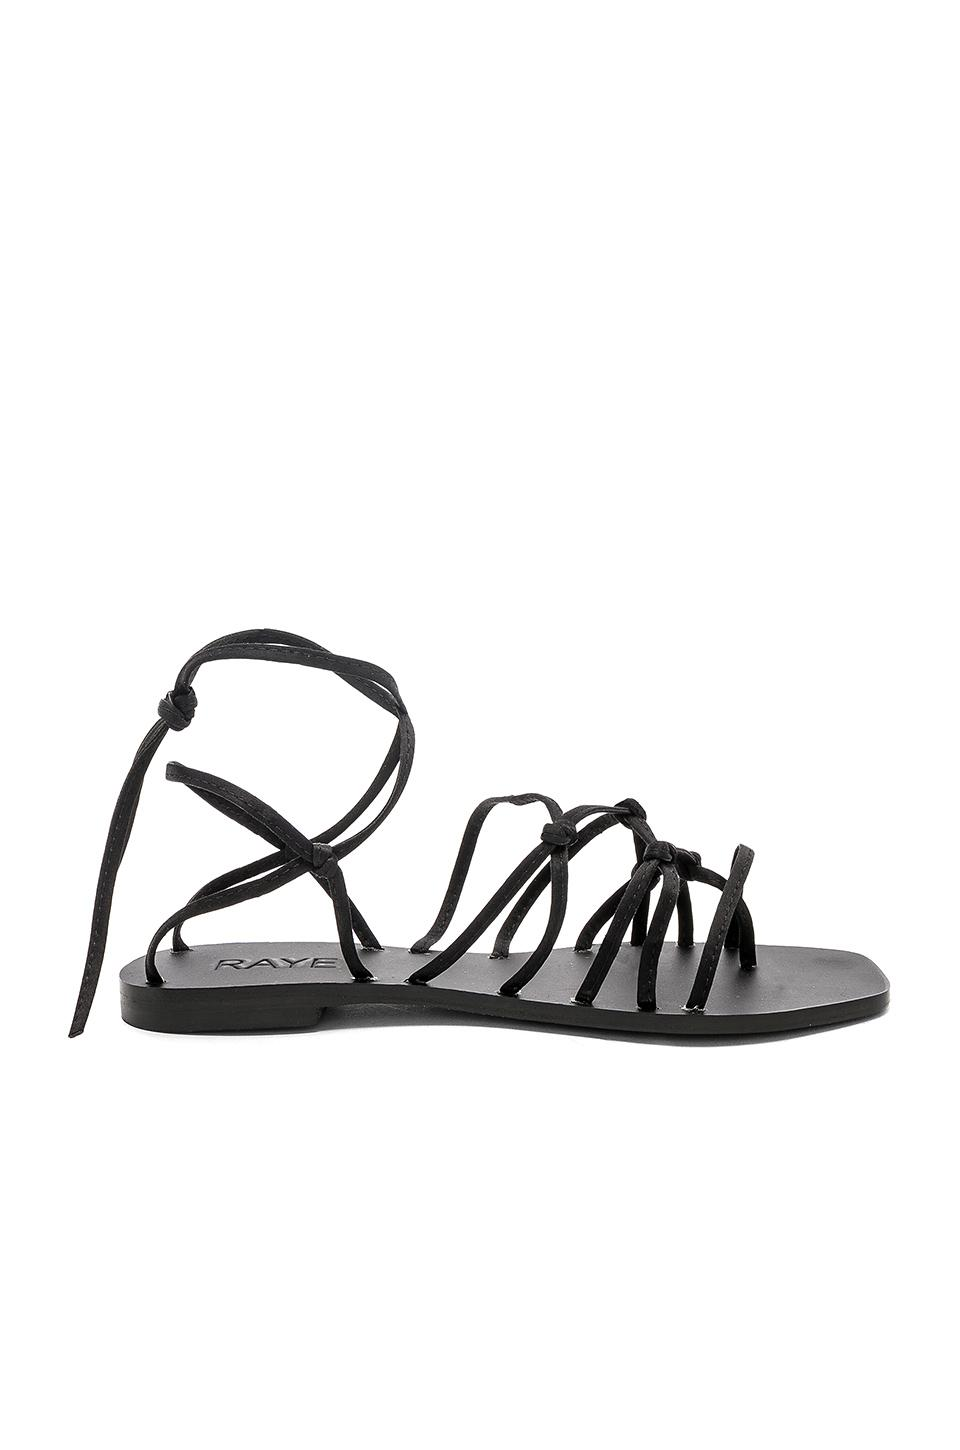 de027ae36eea Raye Tilly Sandal In Black